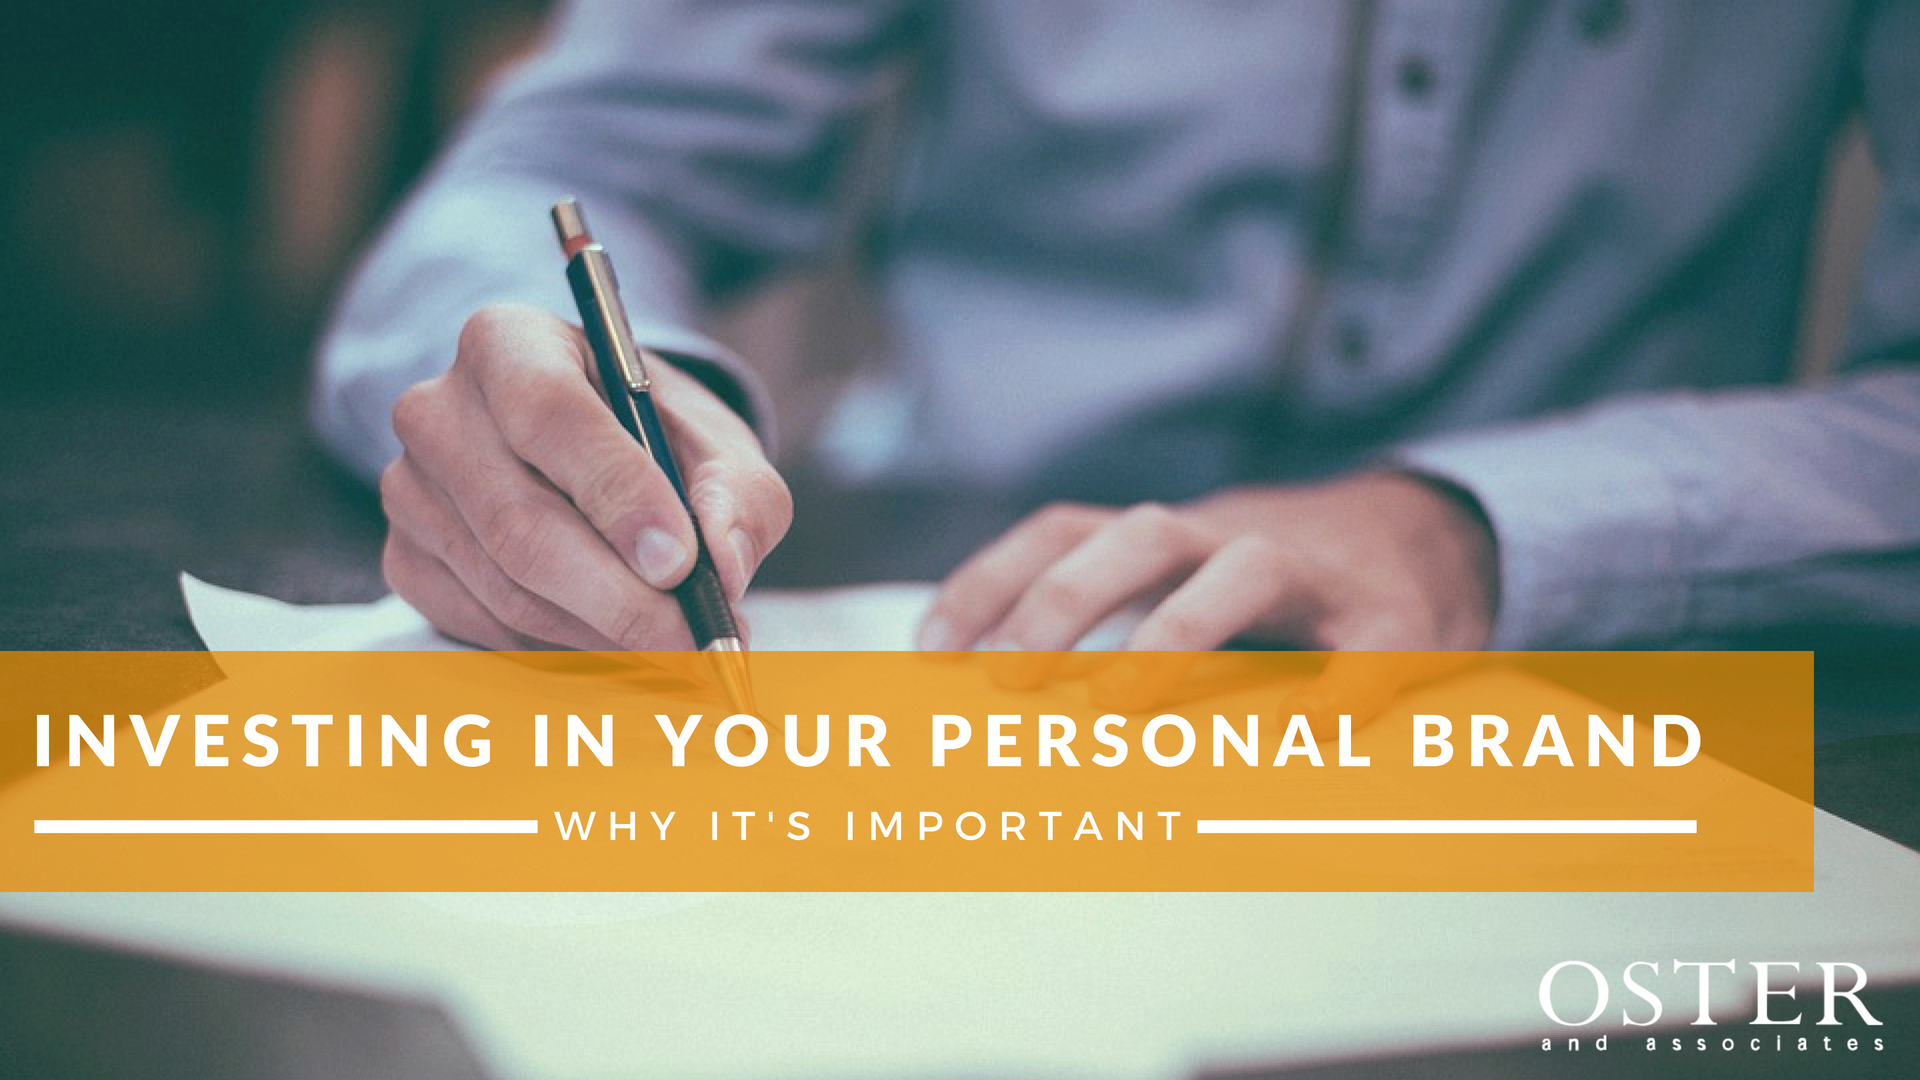 Investing in Your Personal Brand - Why it's Important